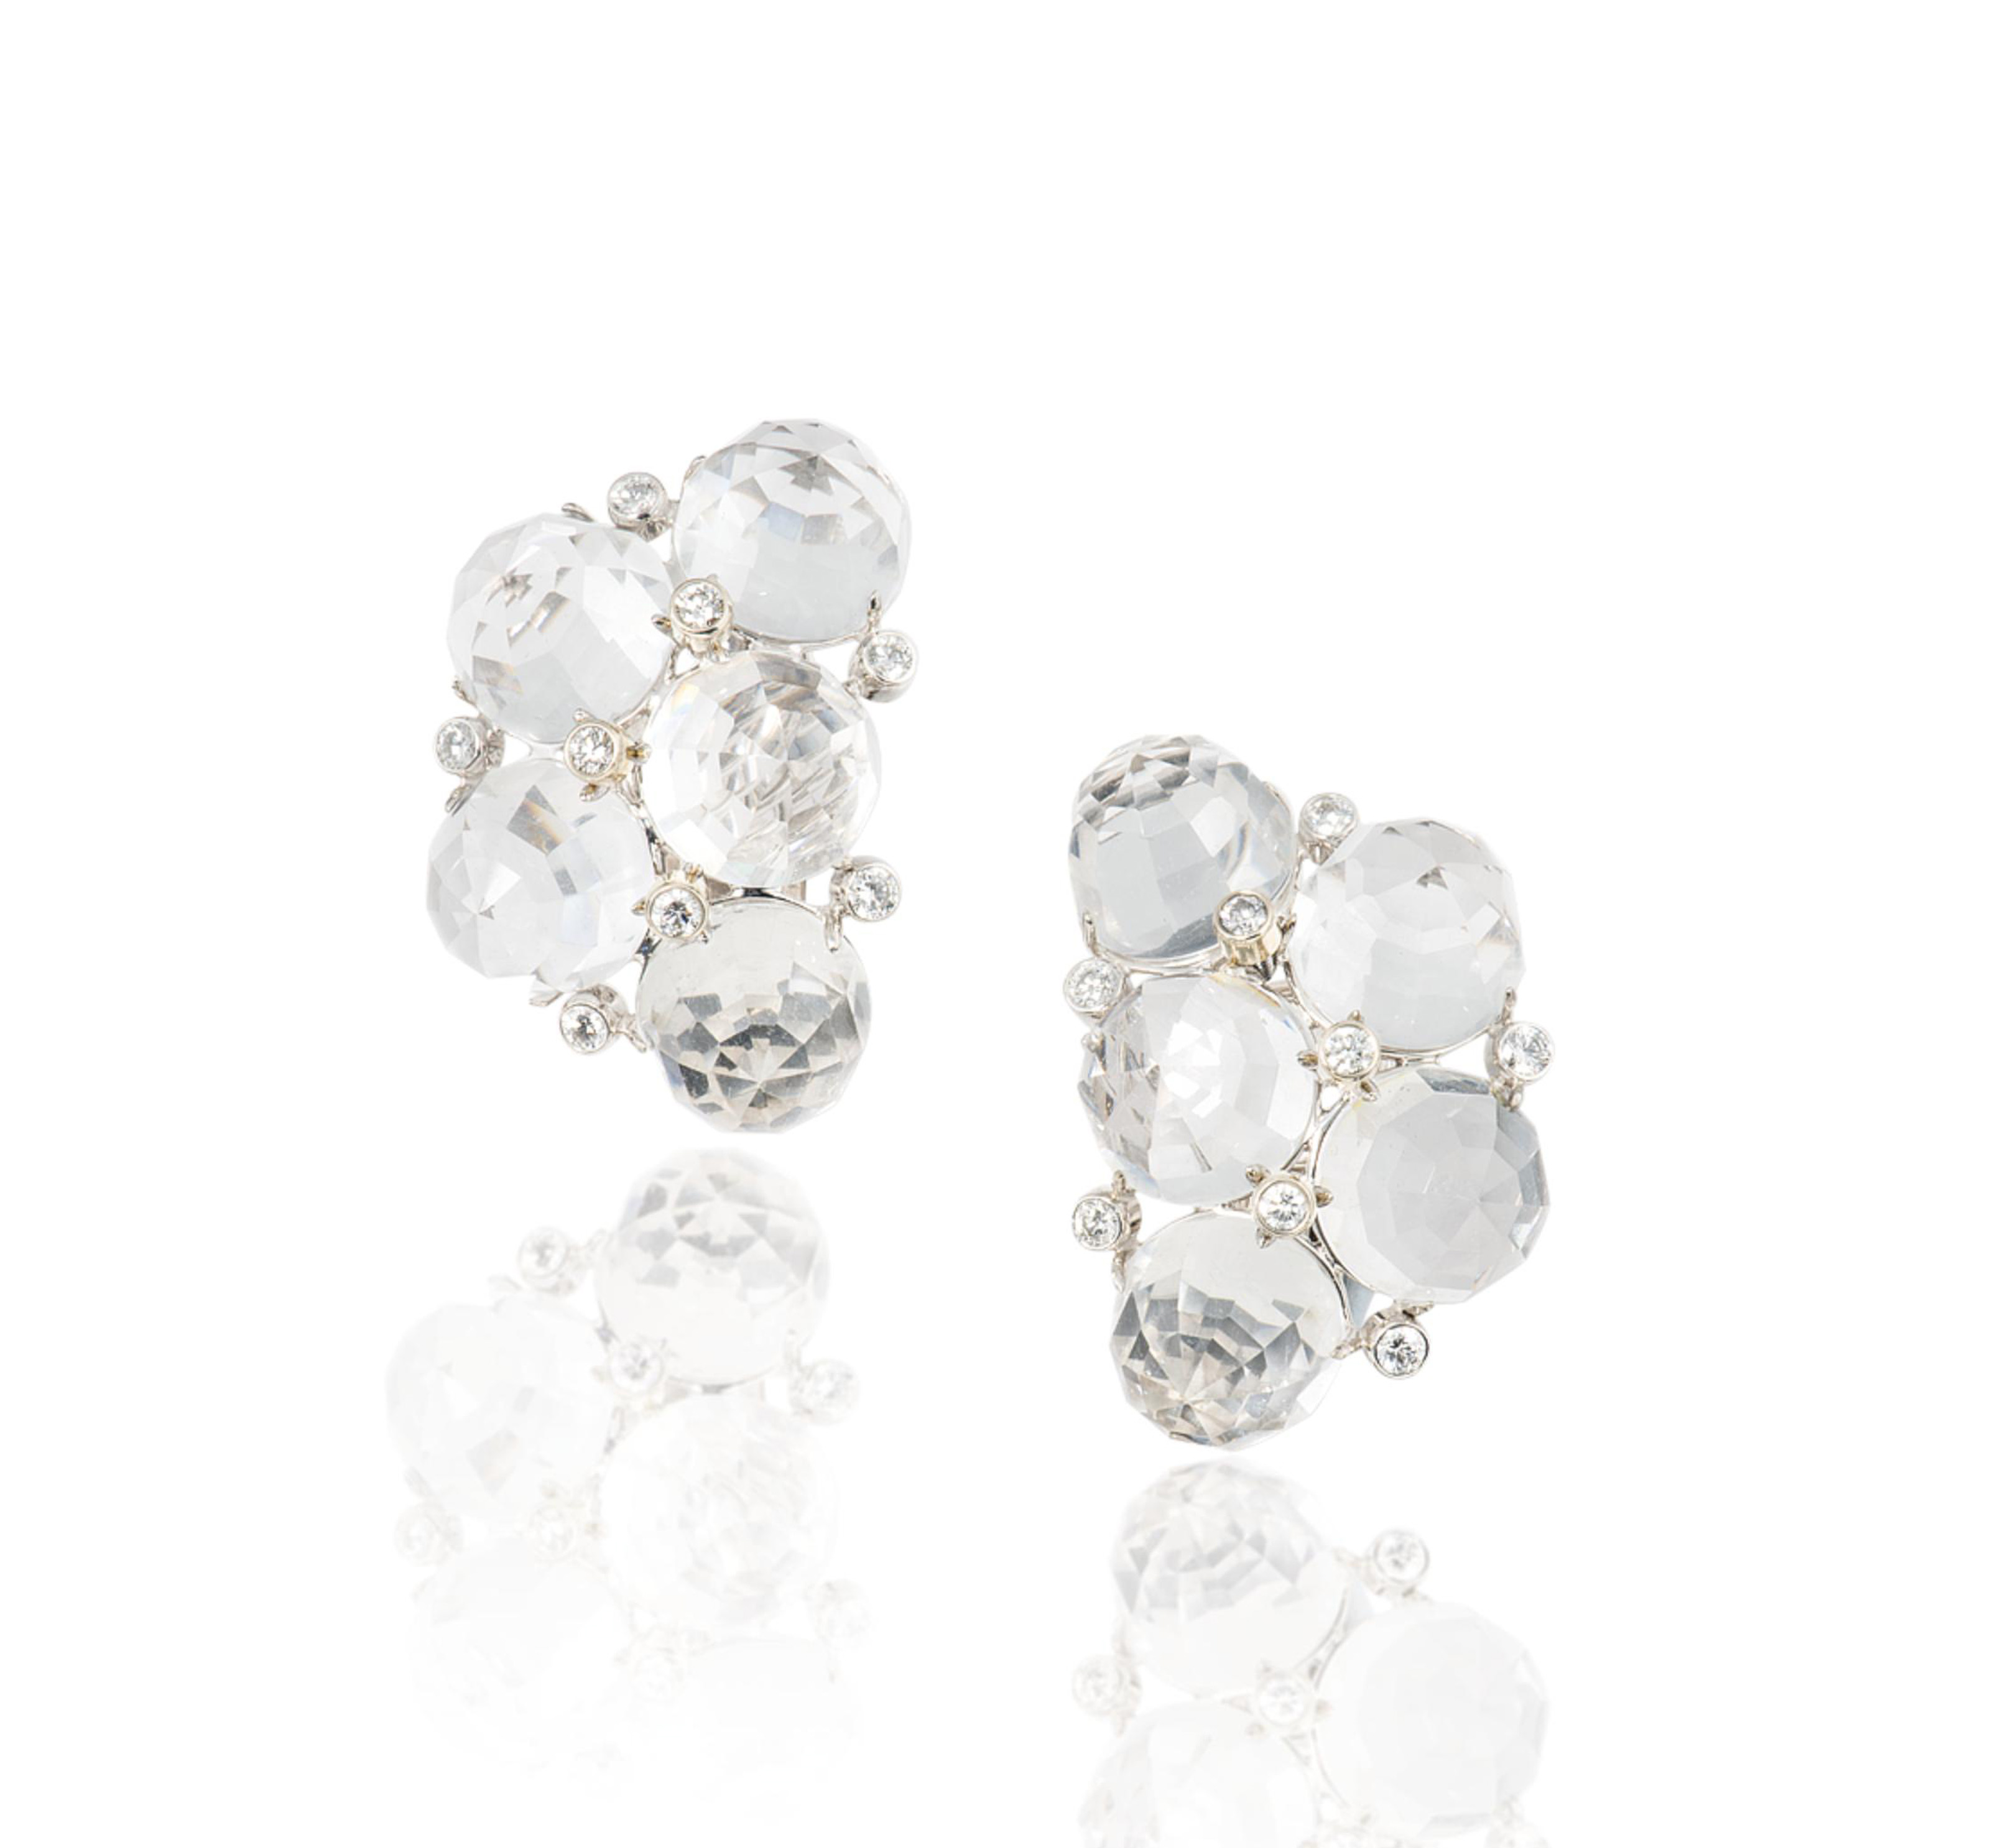 A PAIR OF ROCK CRYSTAL AND DIAMOND EAR CLIPS, BY ALETTO BROTHERS